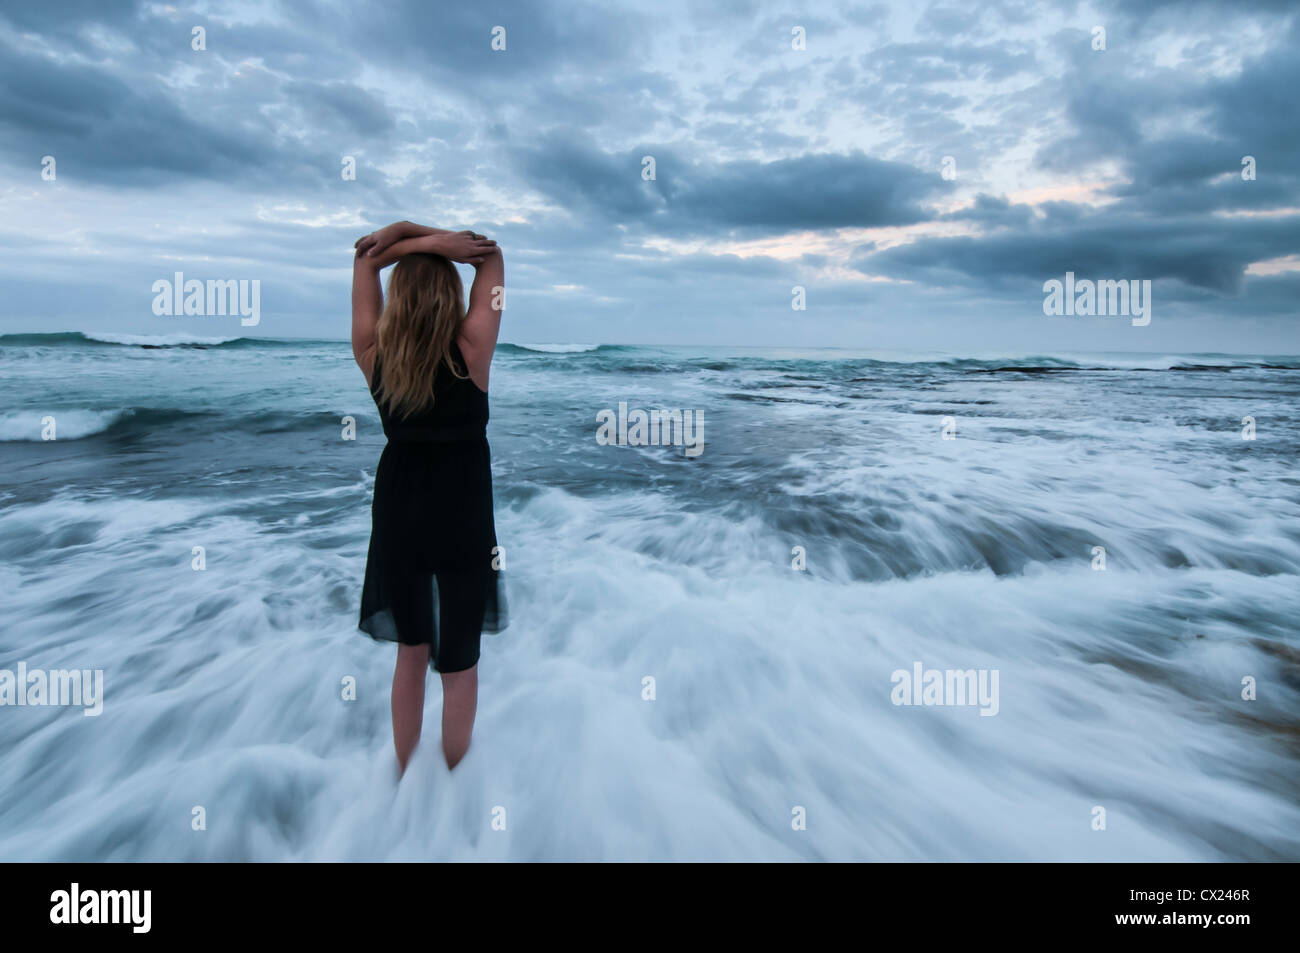 girl holding her arms above her head while water washes over her feet - Stock Image